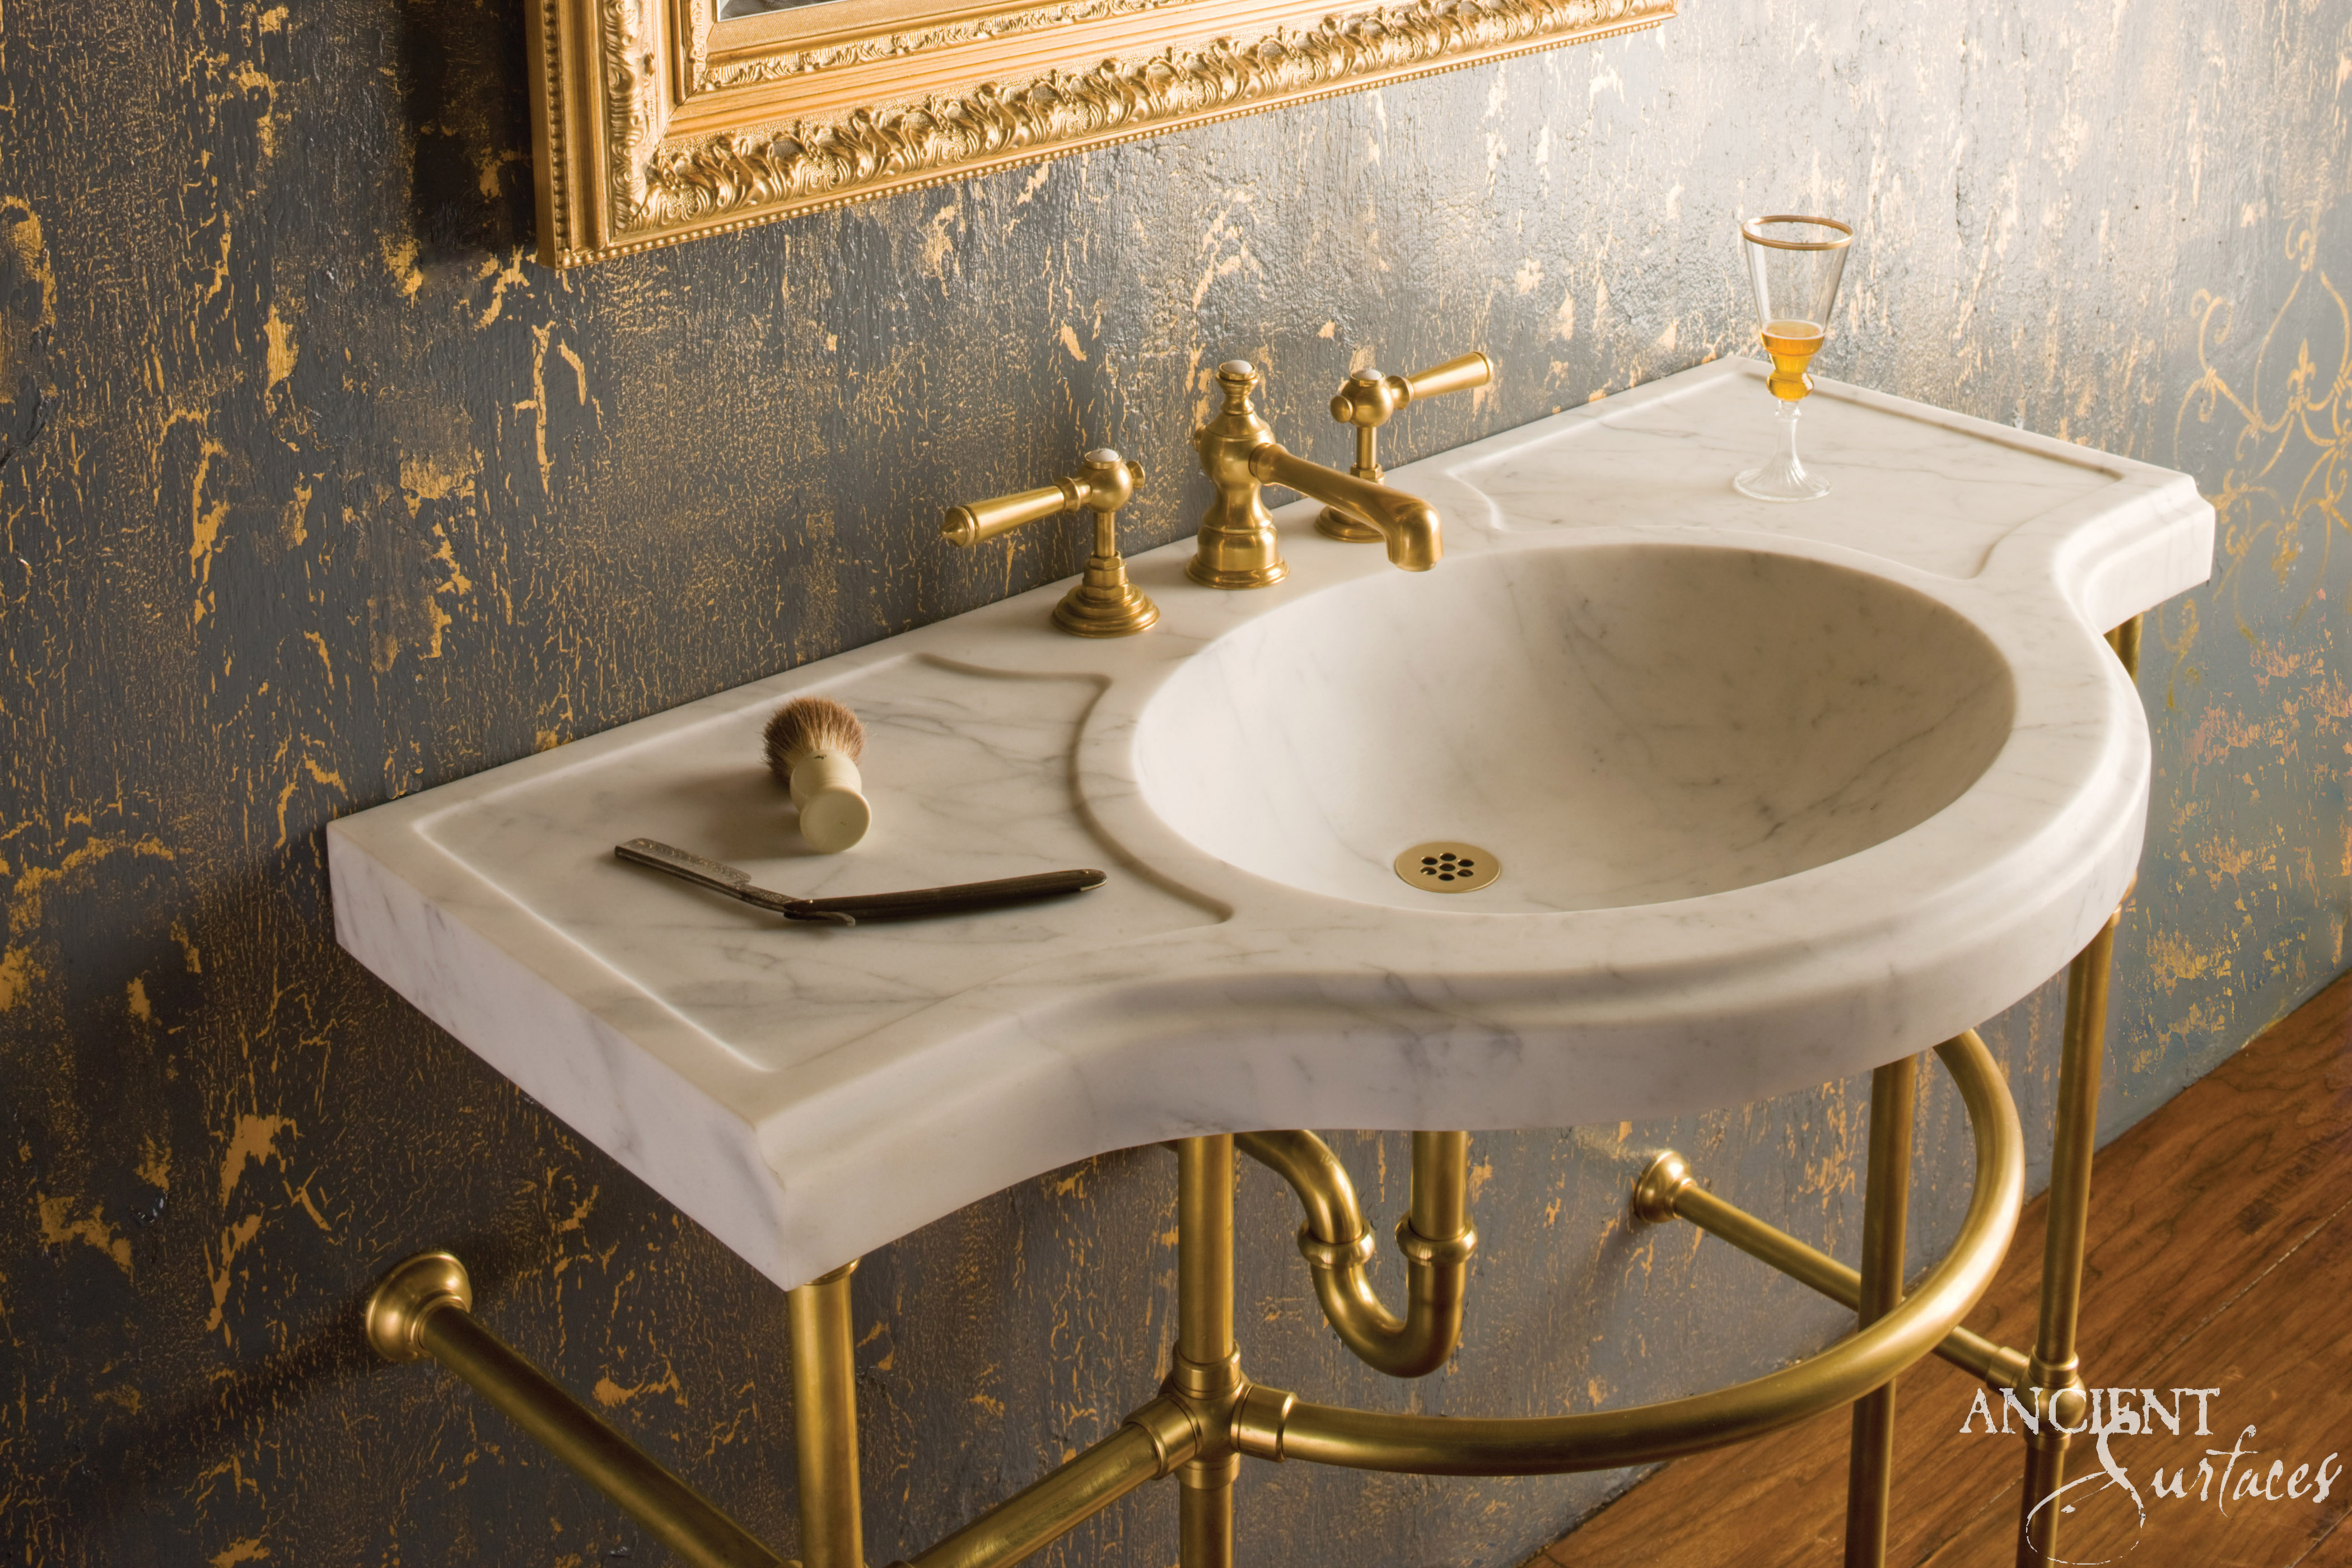 Powder Room Sinks from the game of thrones to majorca, a powder room journey from